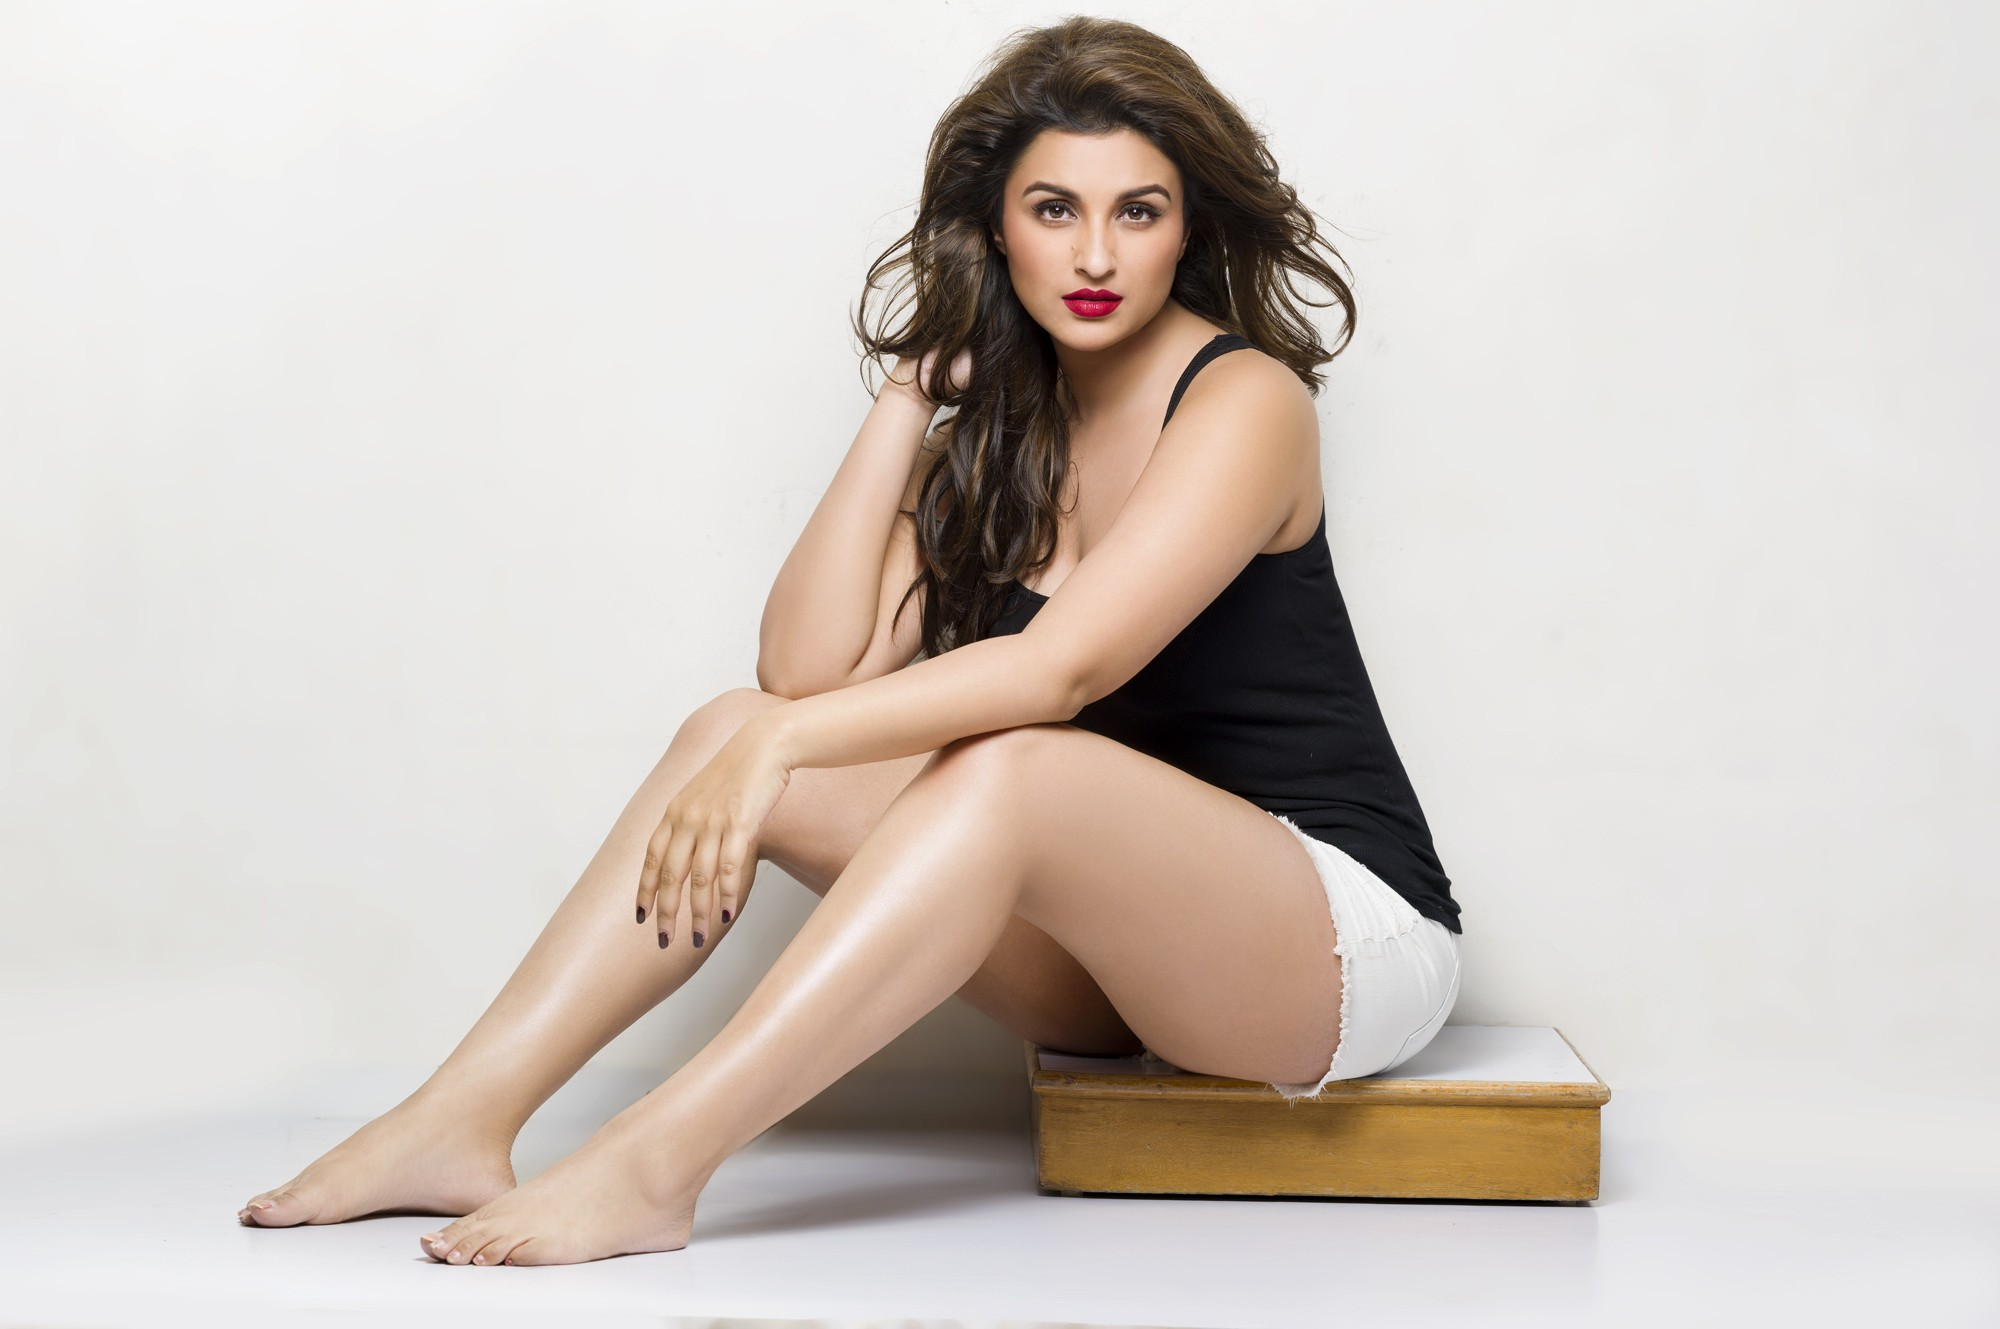 bollywood actress parineeti chopra hot photos